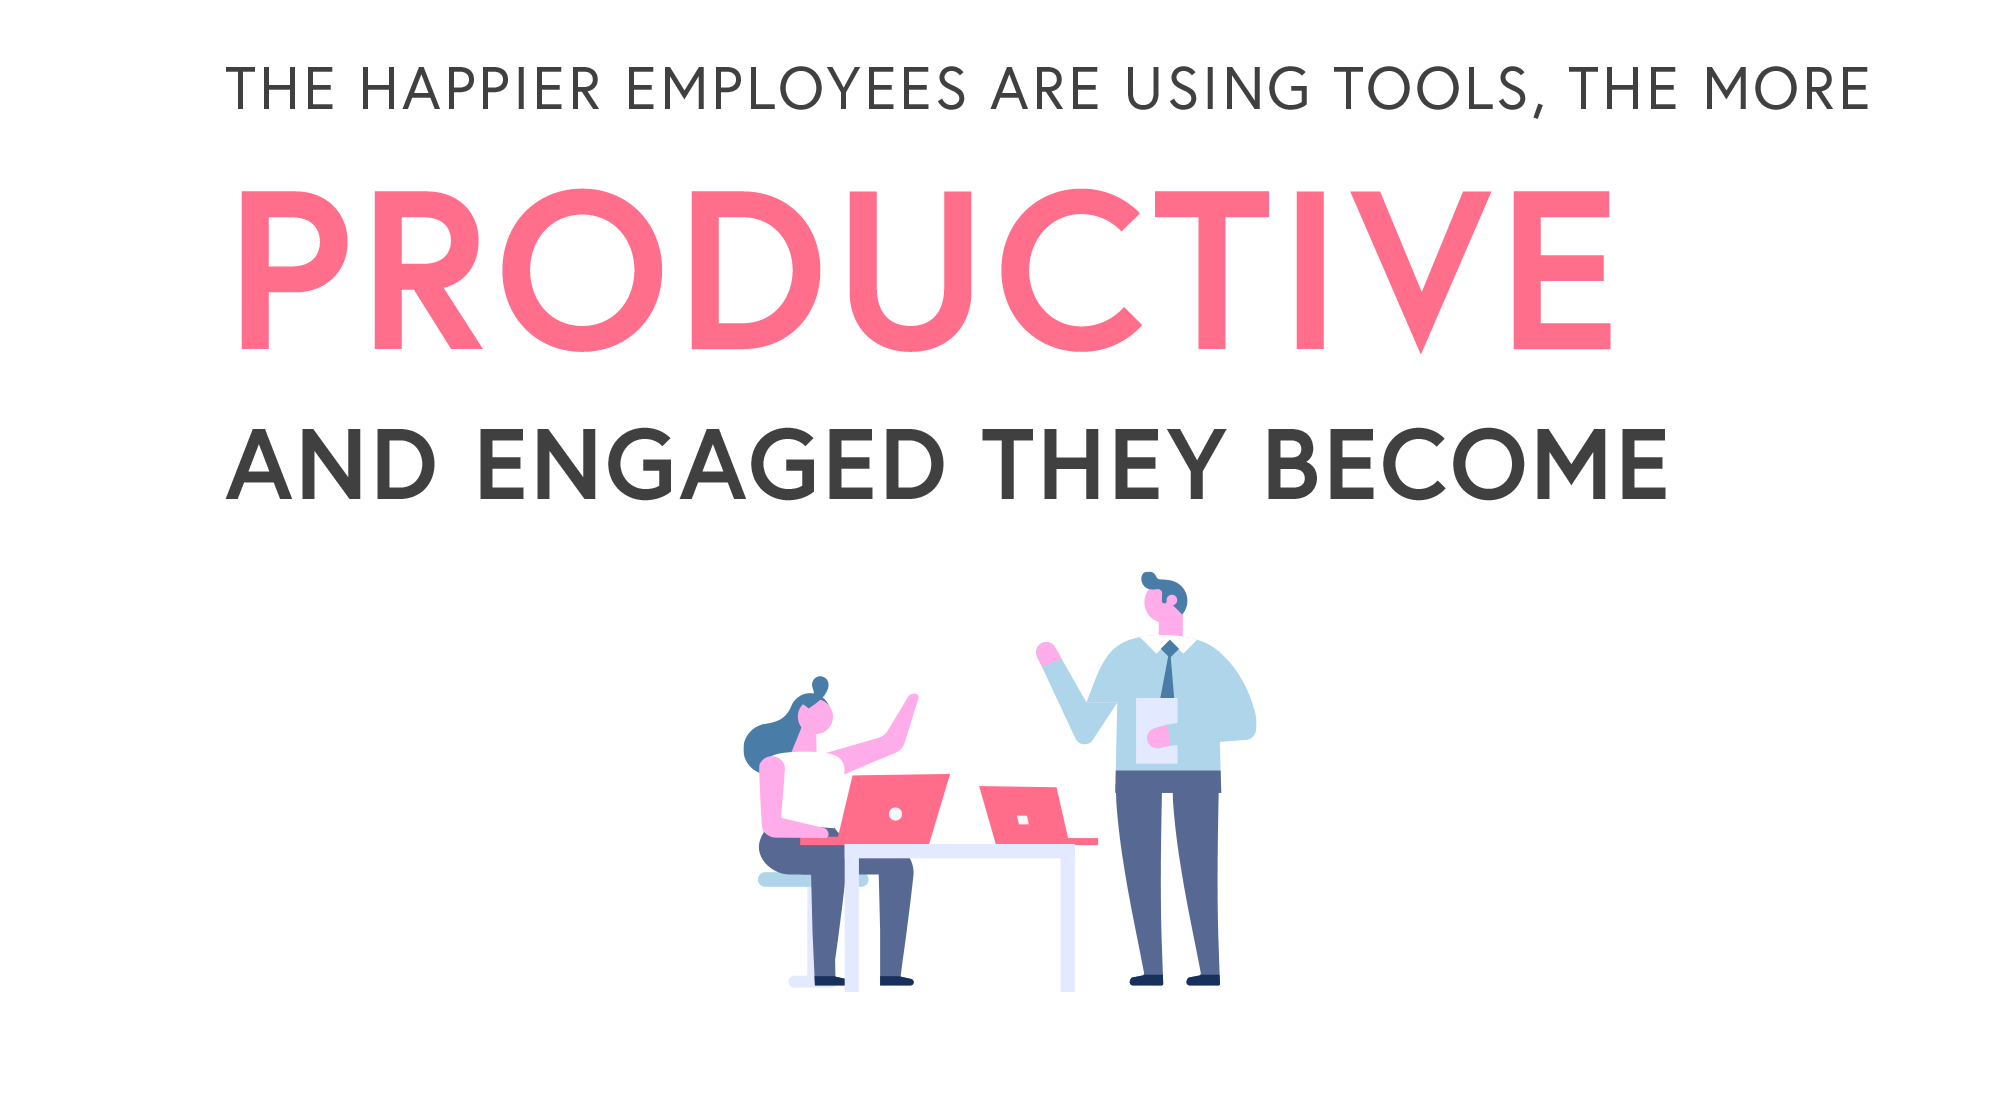 The happier employees are using tools the more productive and engaged they become